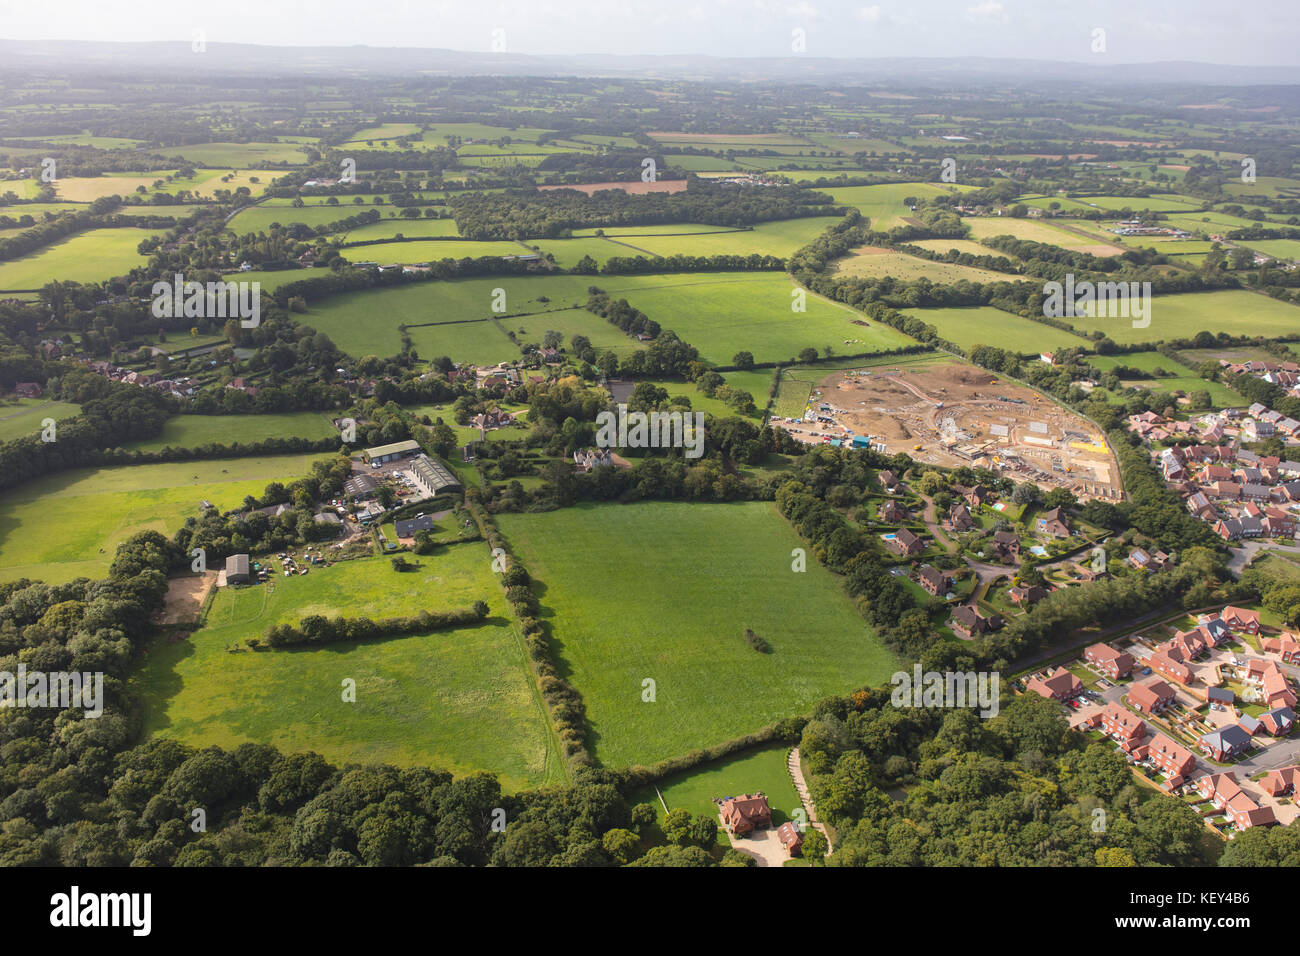 An aerial view illustrating housing development around the edge of a Sussex town - Stock Image